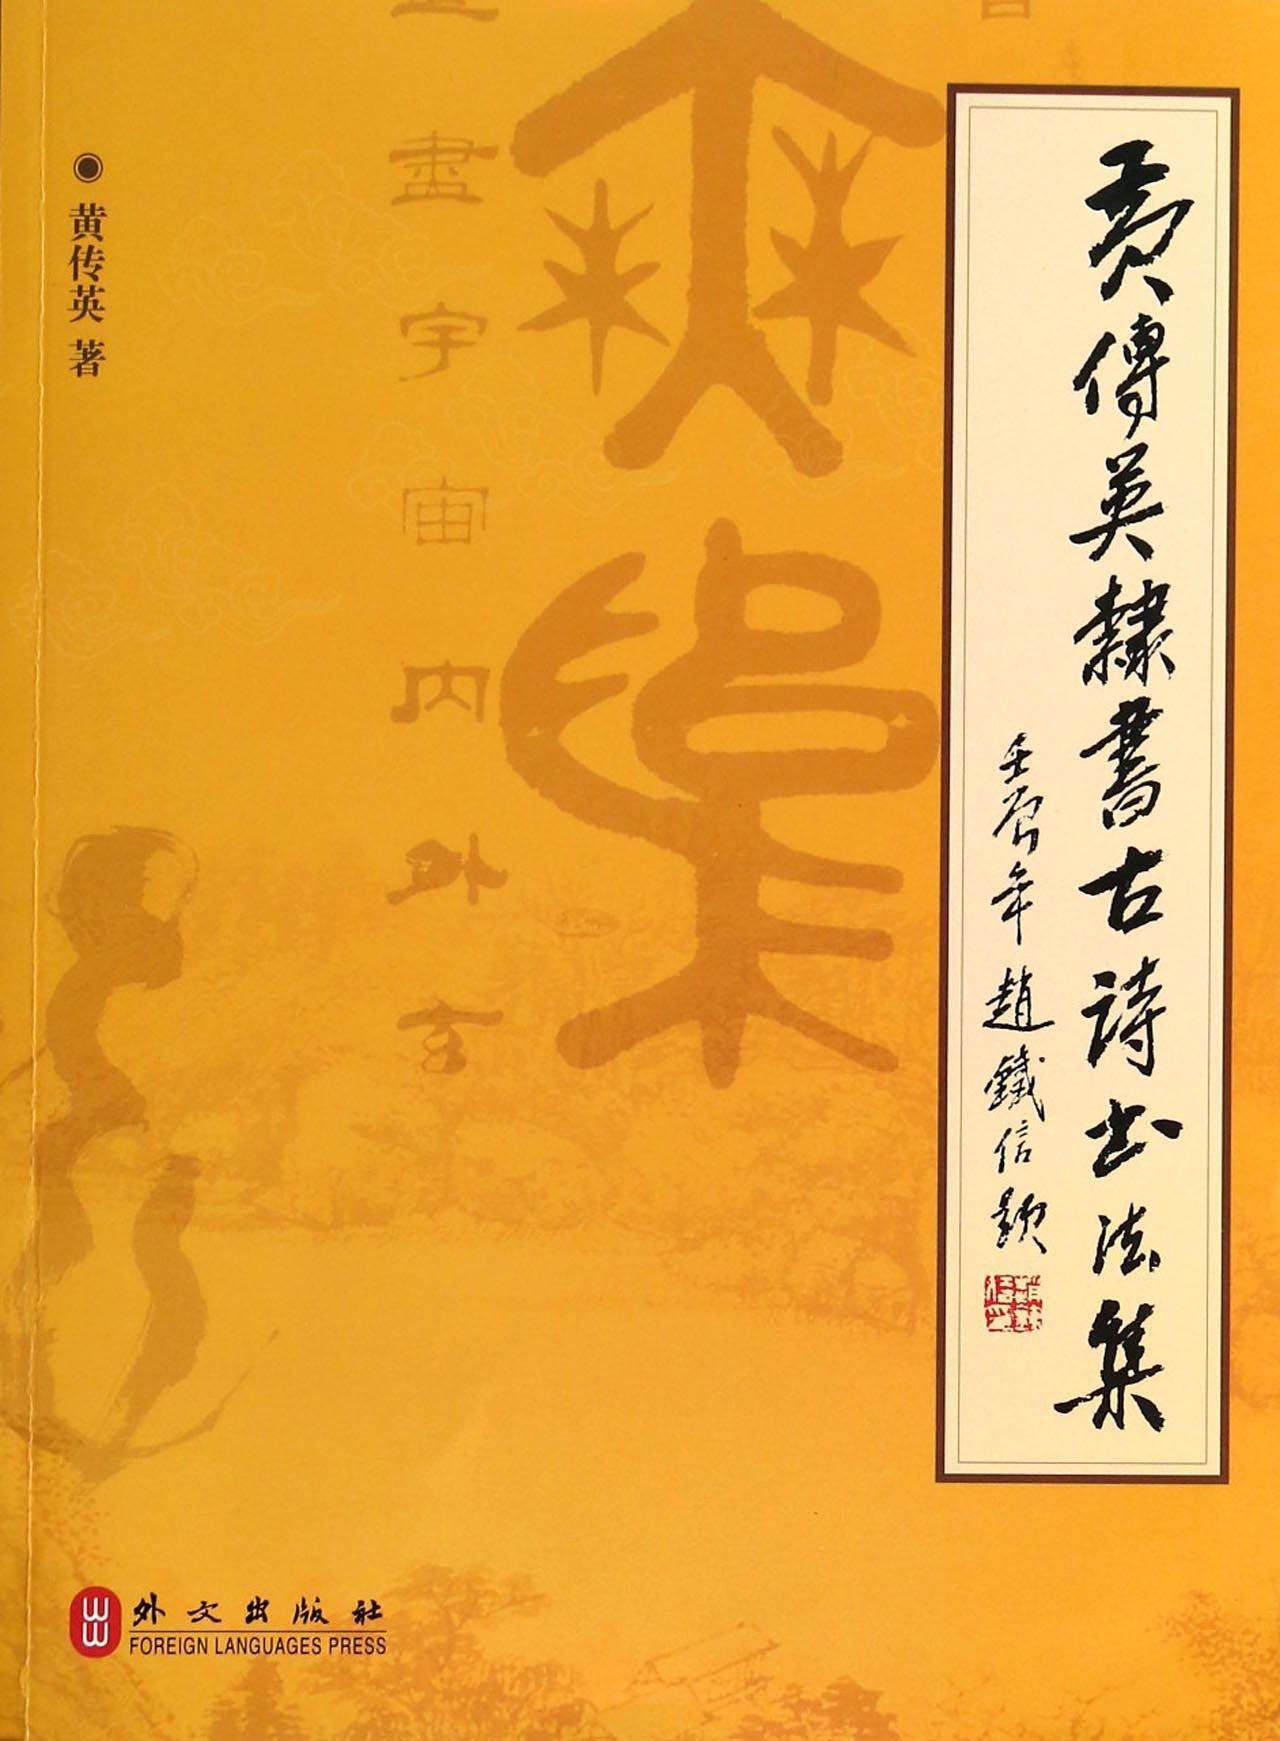 Lishu Calligraphy of Huang Chuanying in Ancient Chinese Peotry 黄传英隶书古诗书法集  by  Huang Chuanying 黄传英